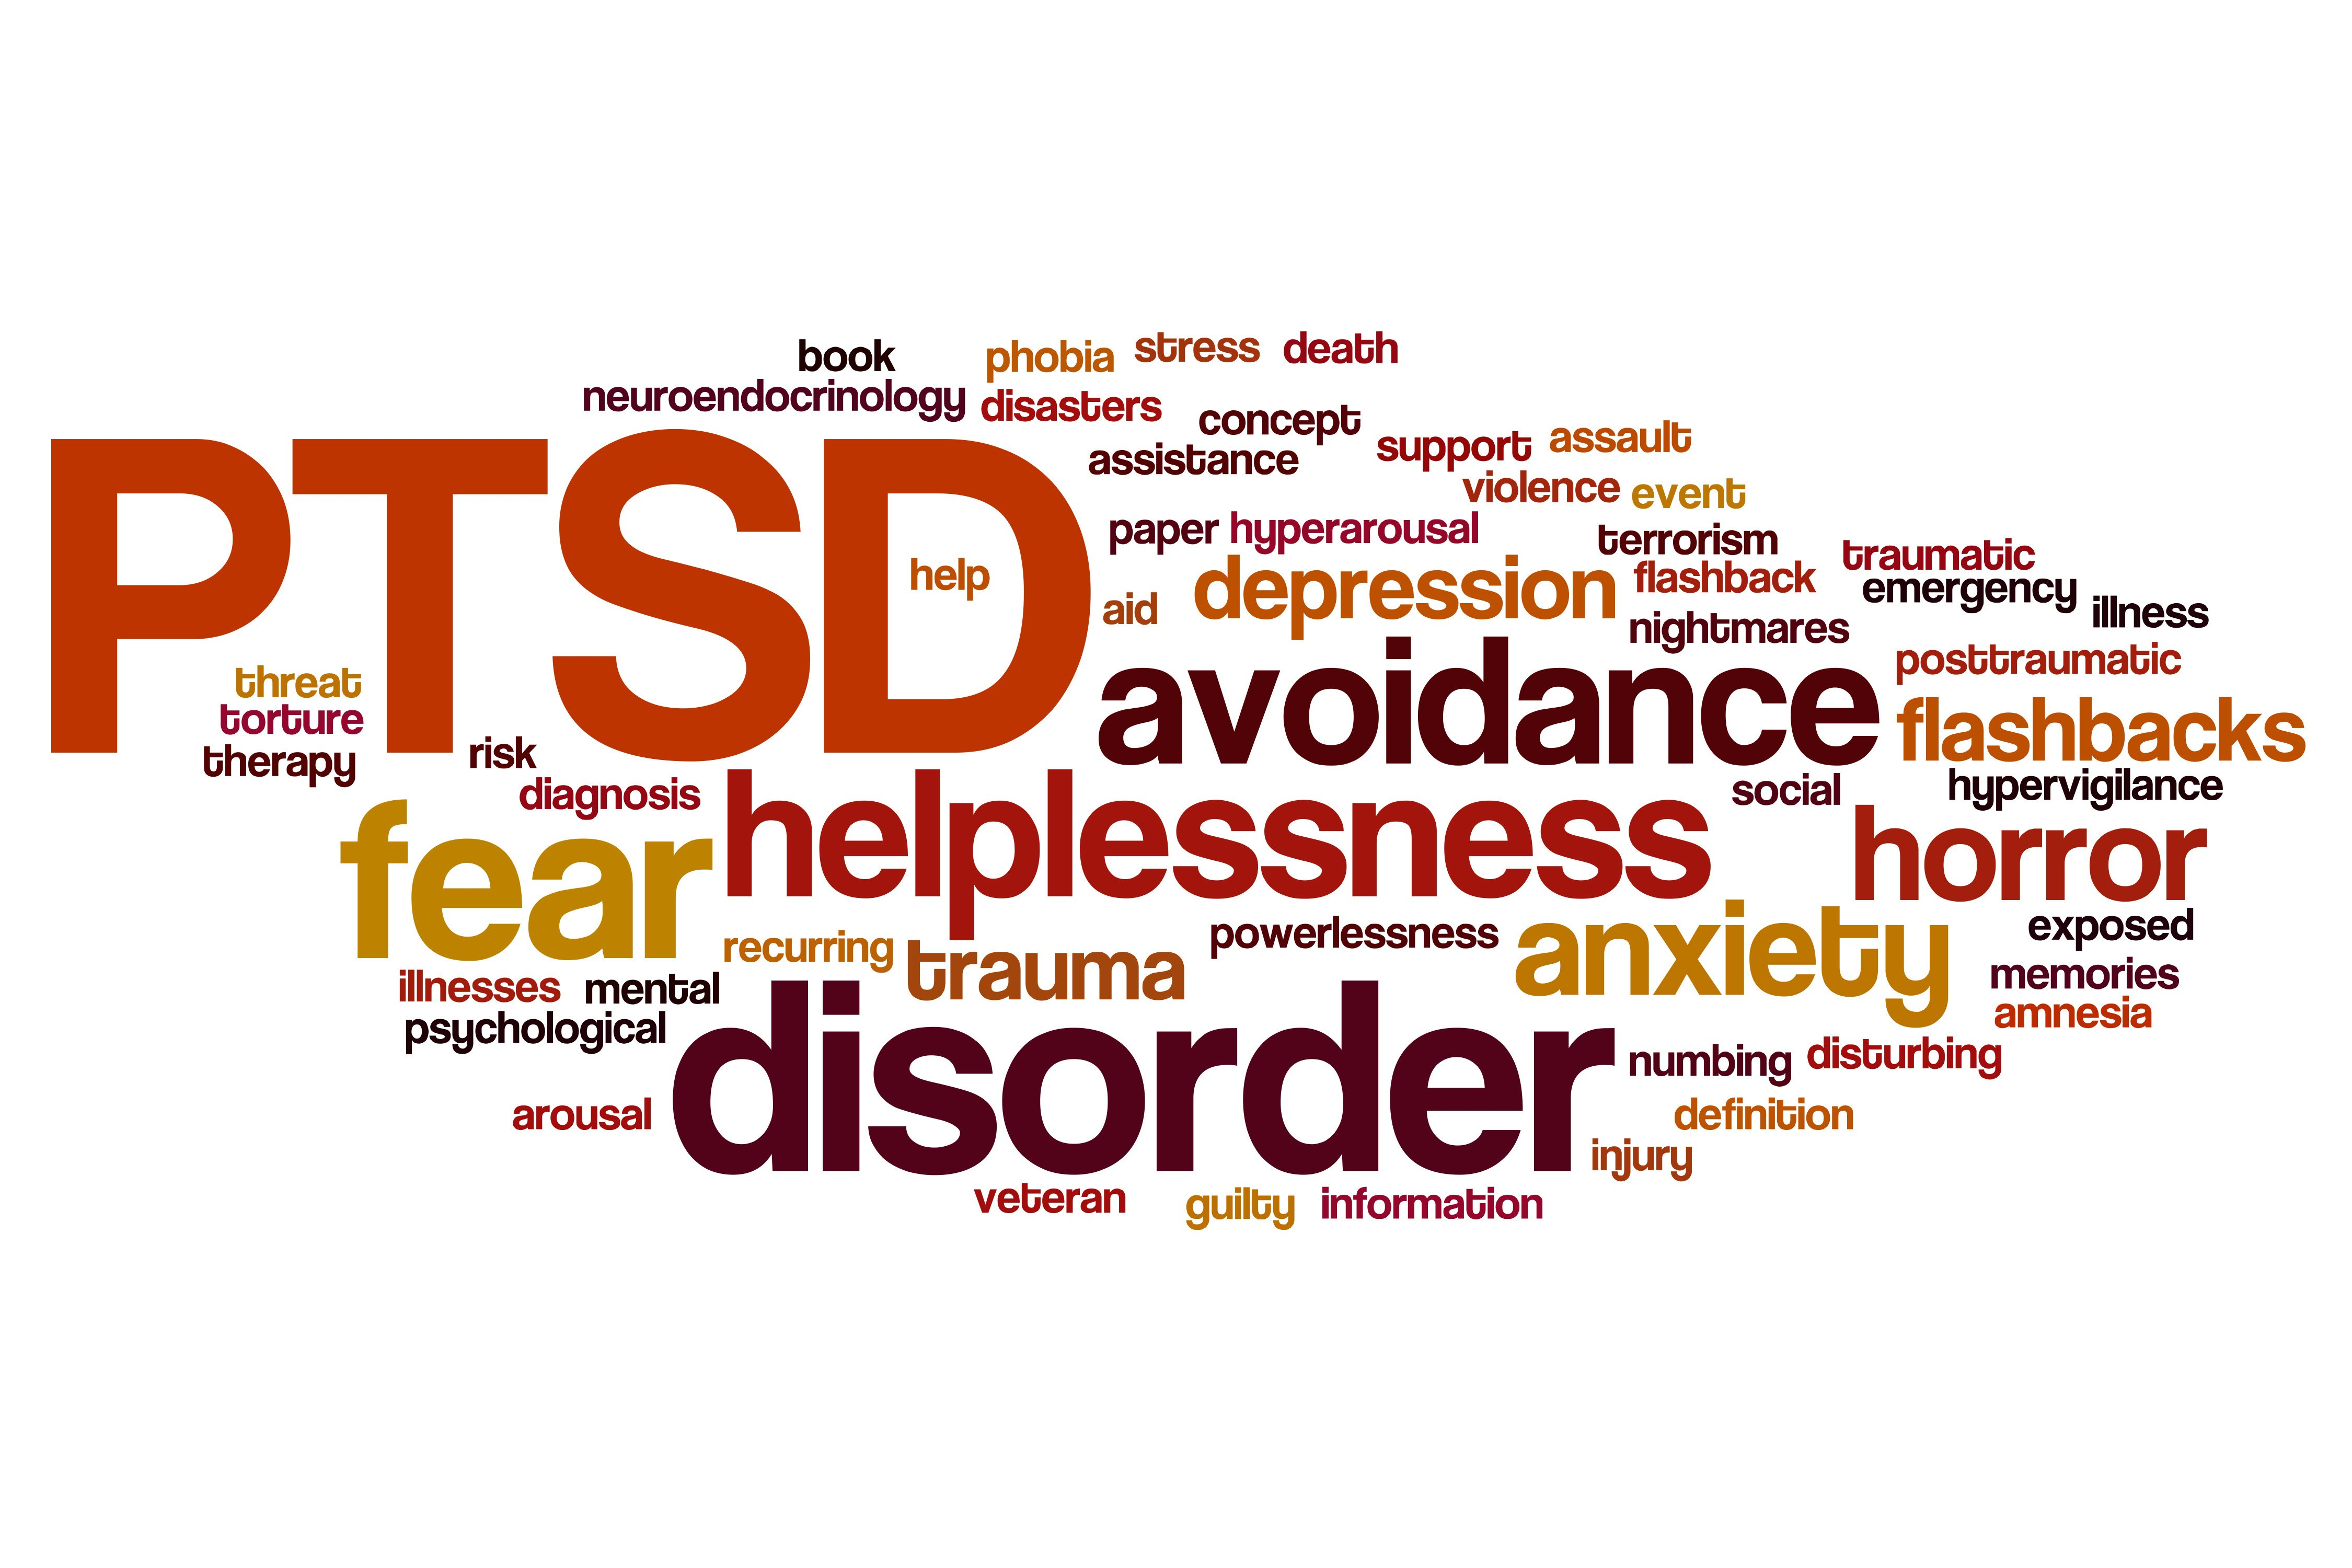 Post traumatic stress disorder PTSD understanding and recovery and treatment